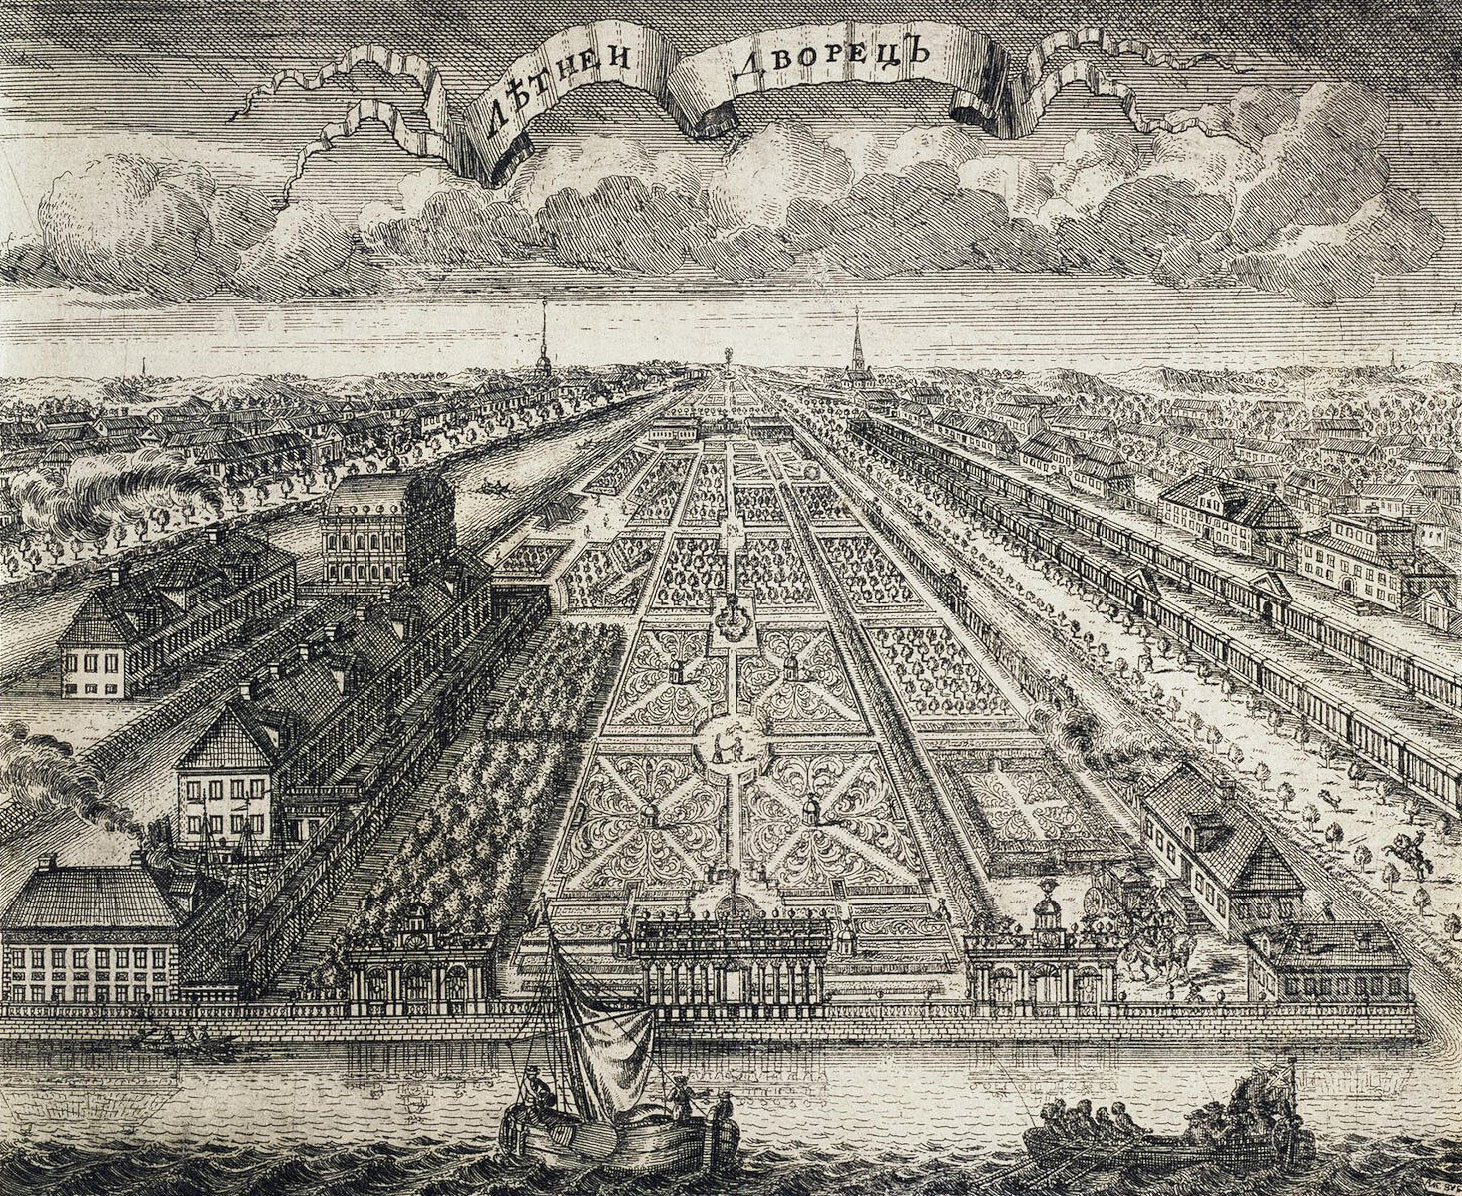 Summer House and Summer Garden in St. Petersburg, 1716.